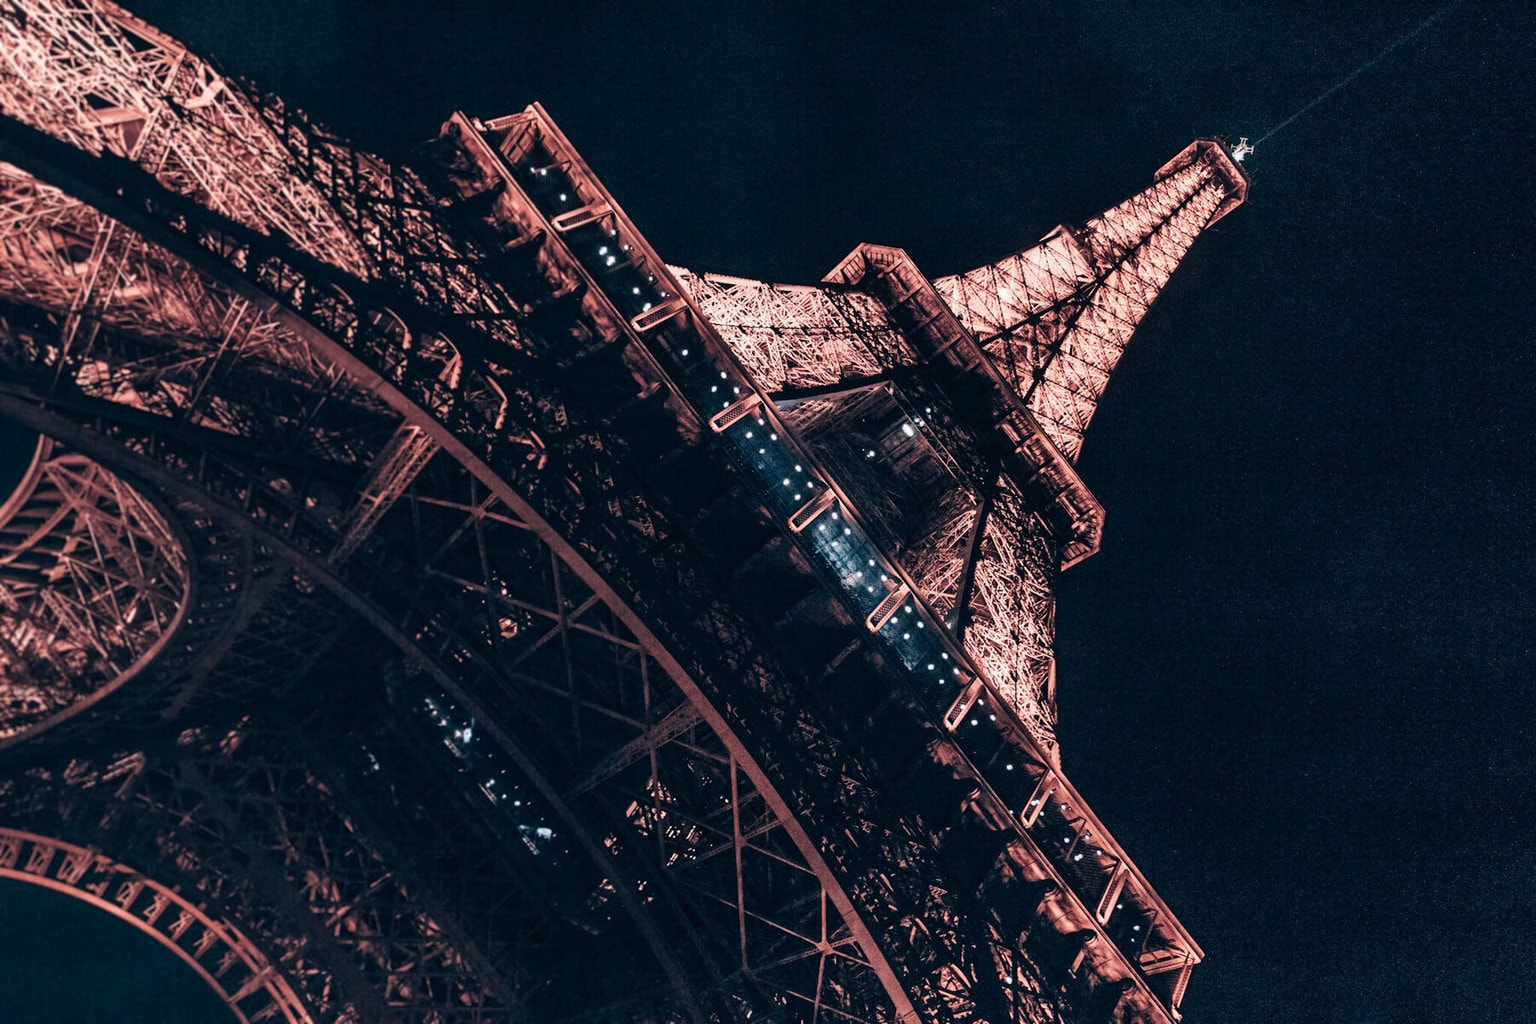 The Eiffel Tower at night from below. Find the best views of the Eiffel Tower and a guide to New Year's in Paris here.